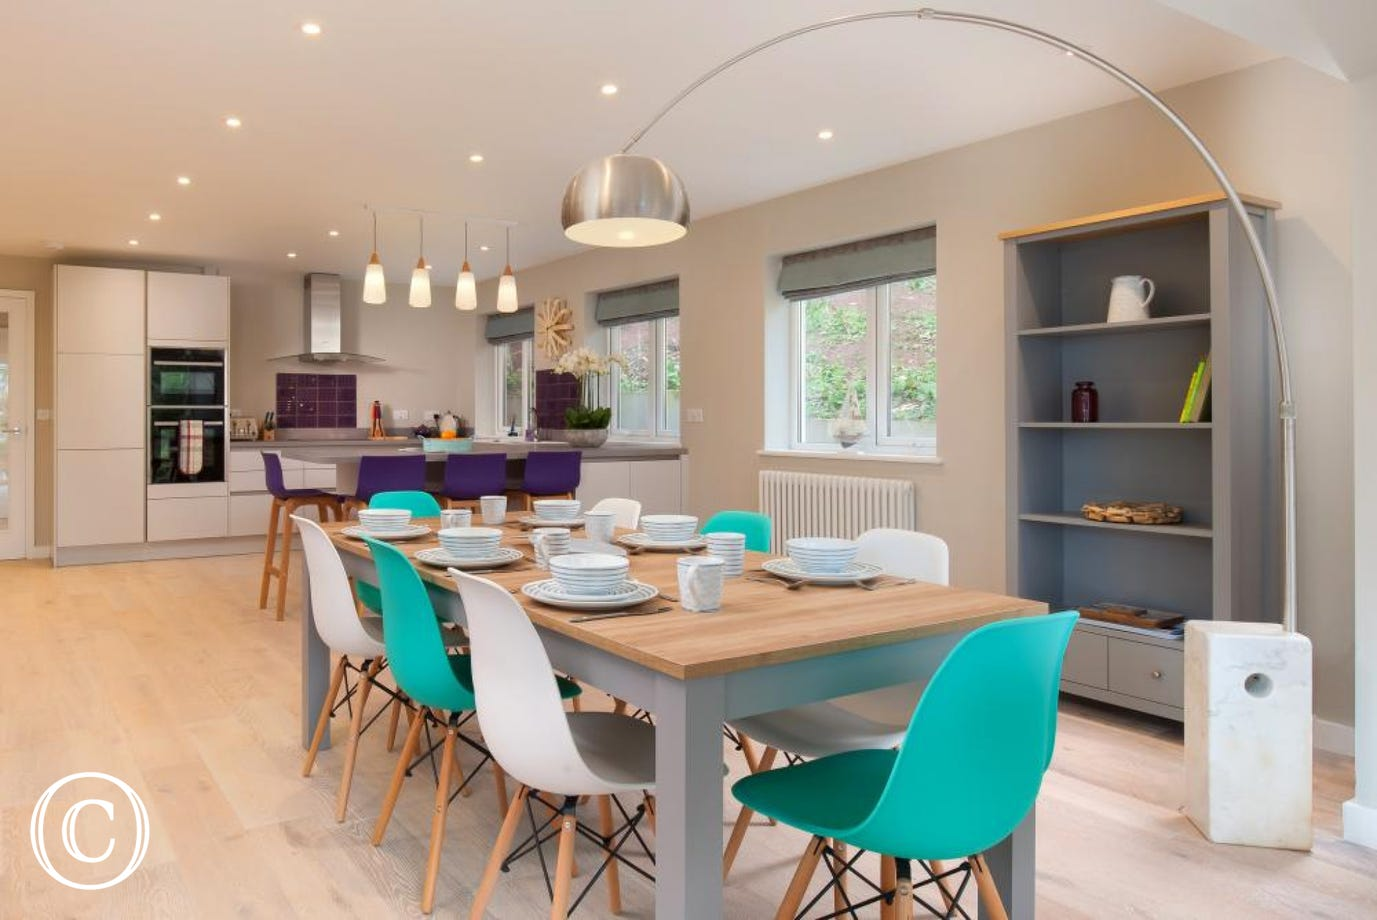 Very spacious kitchen & dining area, perfect for families to get together & entertain